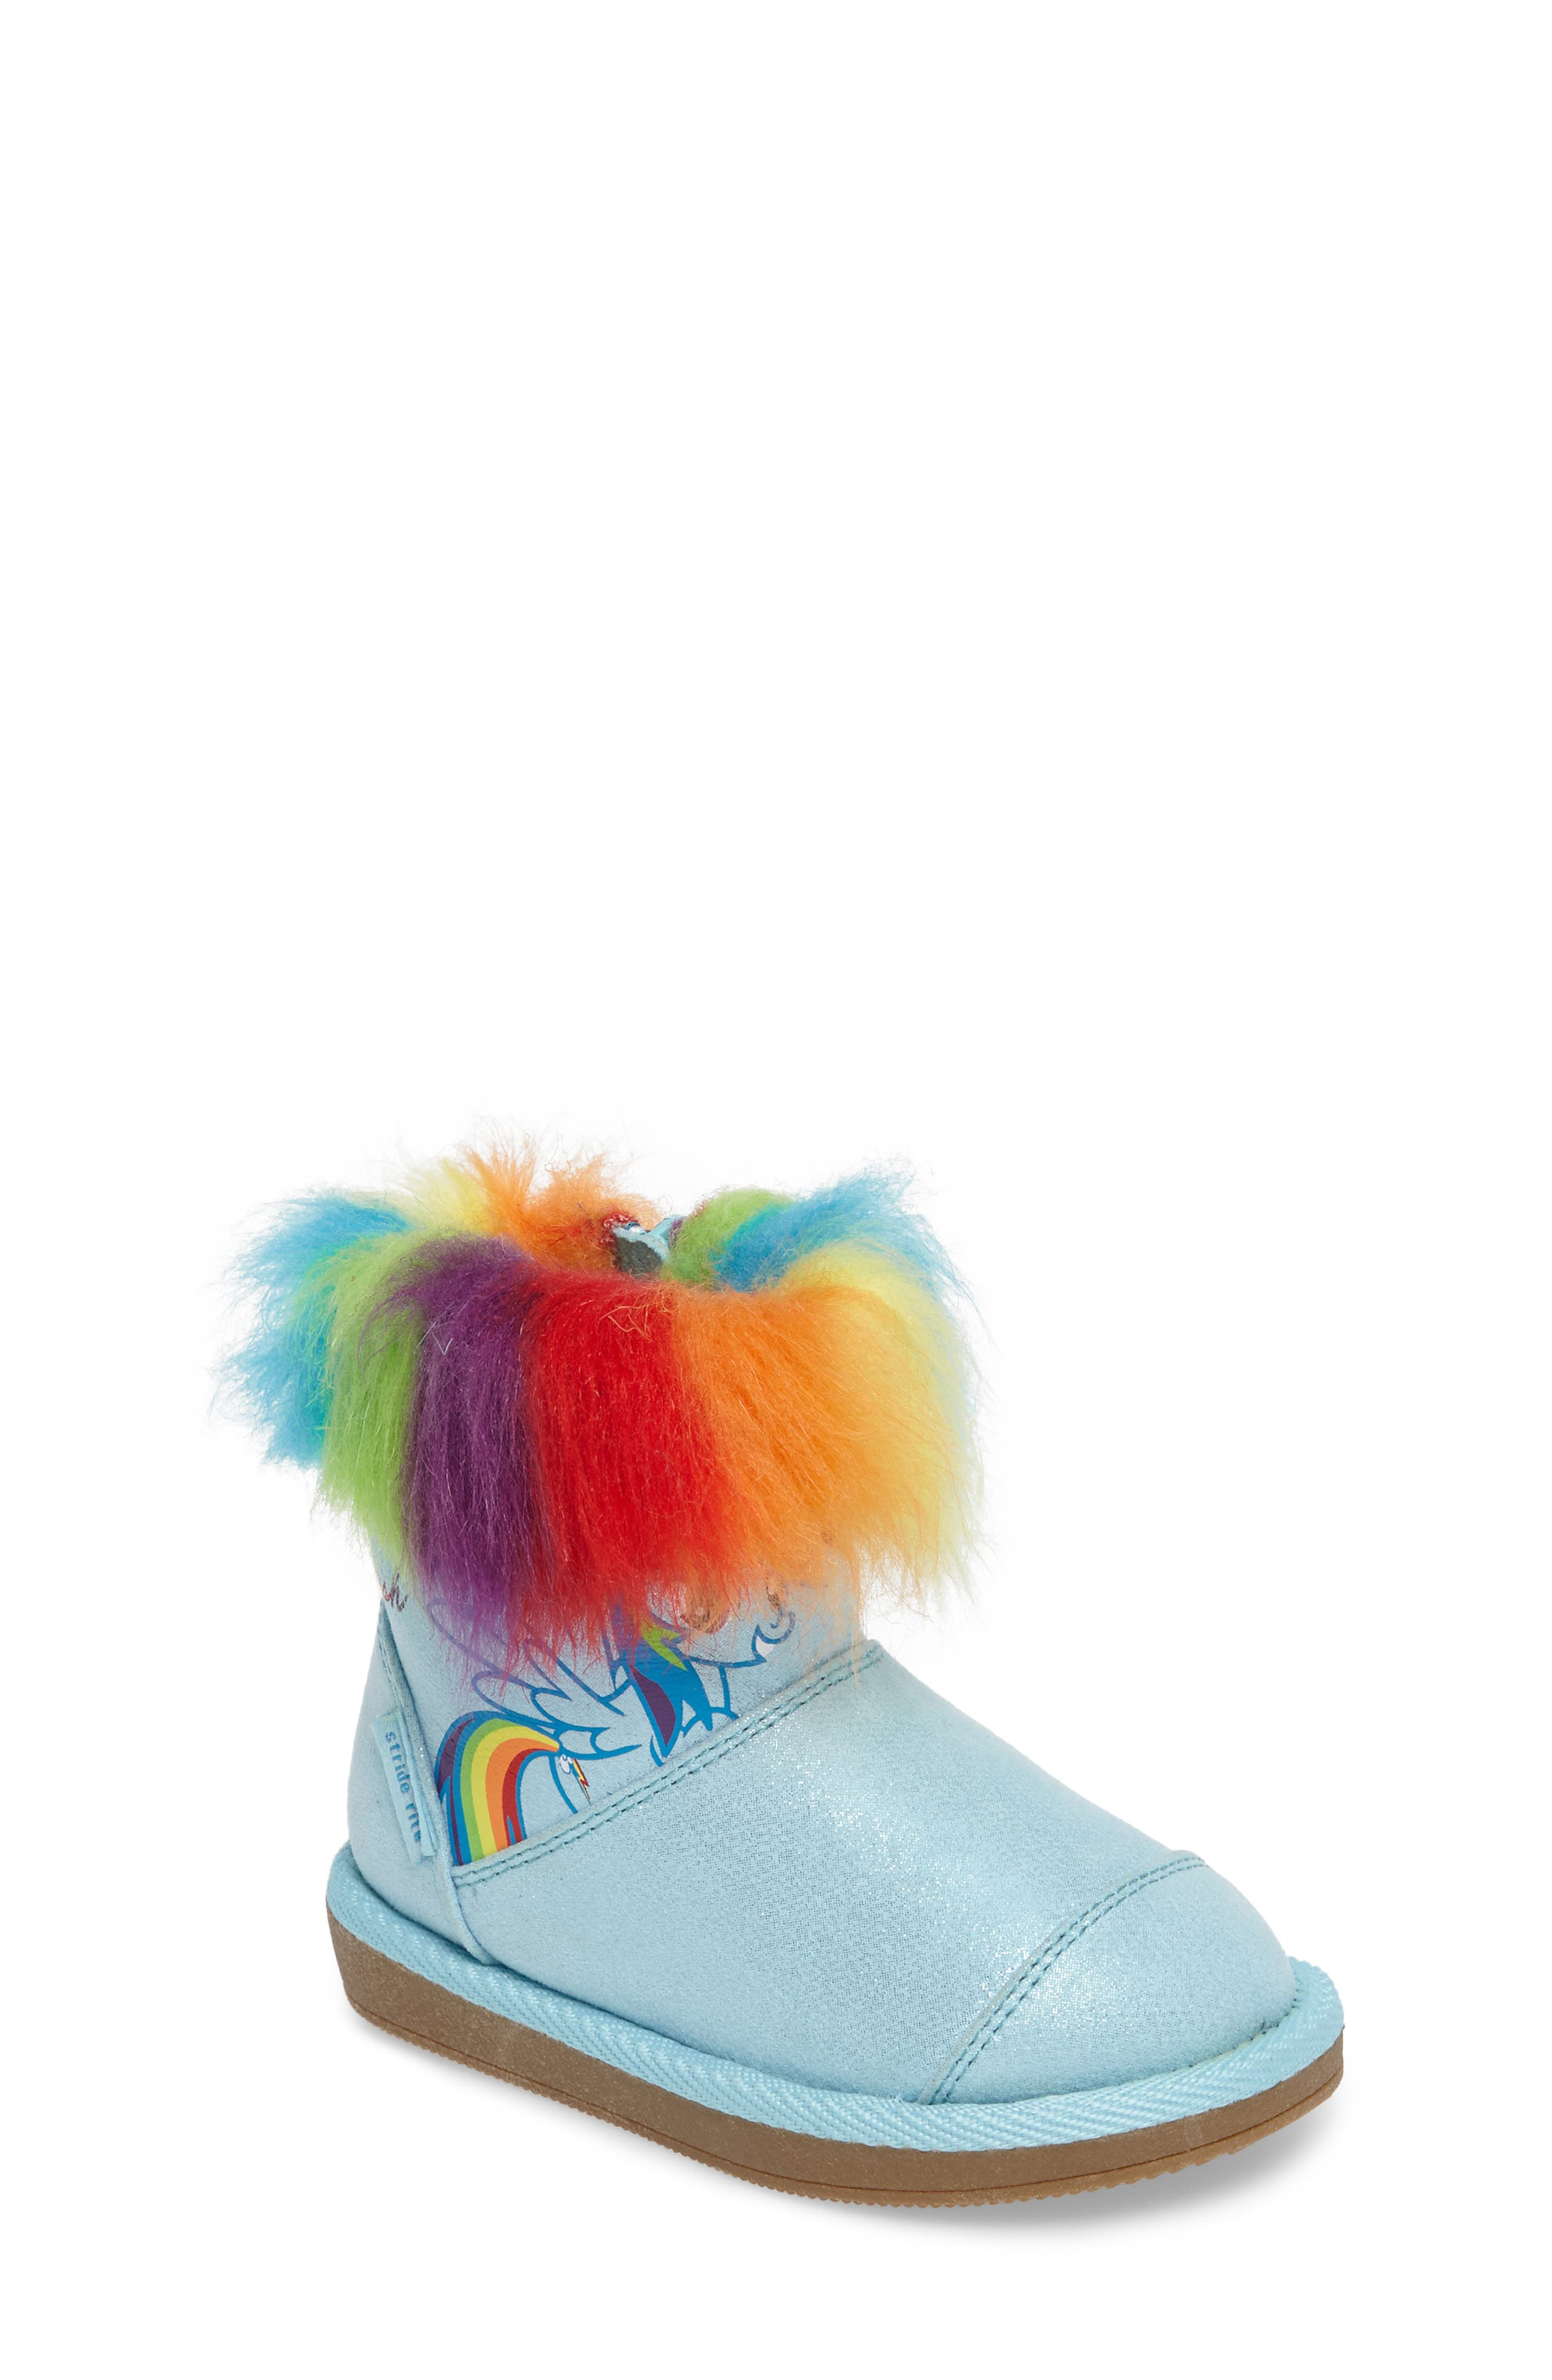 My Little Pony<sup>®</sup> Rainbow Dash Boot,                         Main,                         color, 400